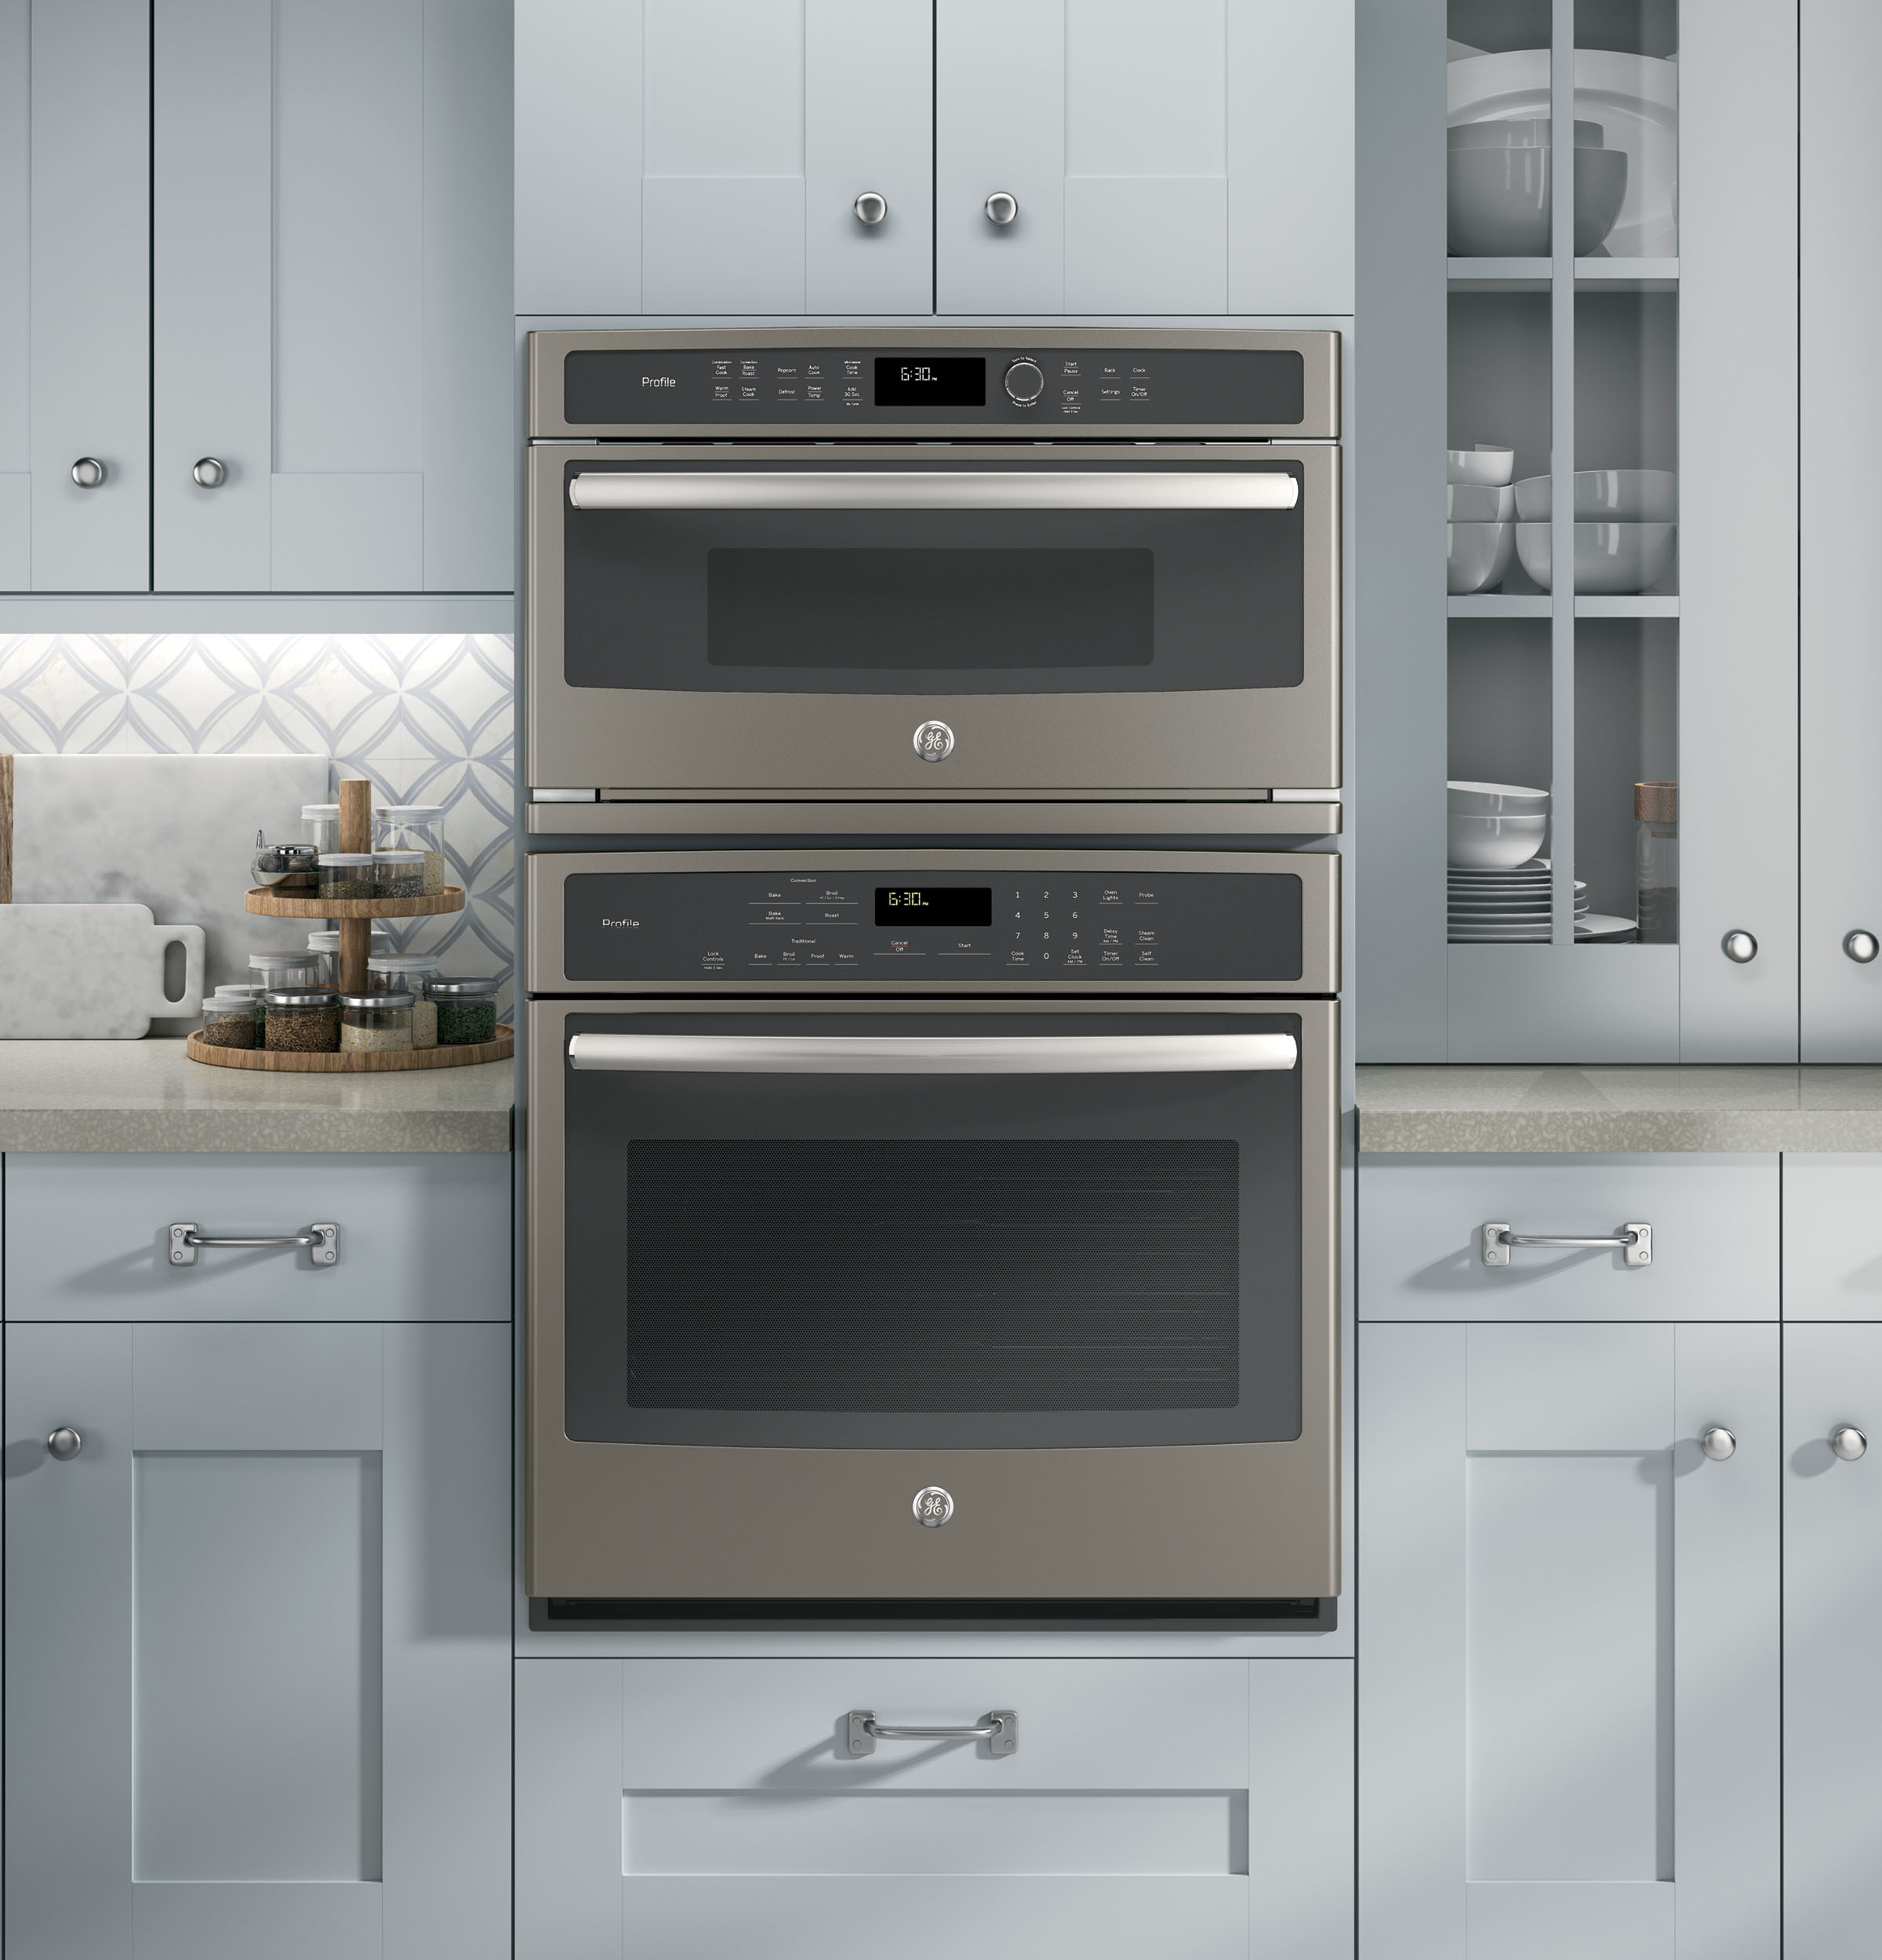 Ge profile series 30 built in single convection wall oven 1 of 18 publicscrutiny Gallery